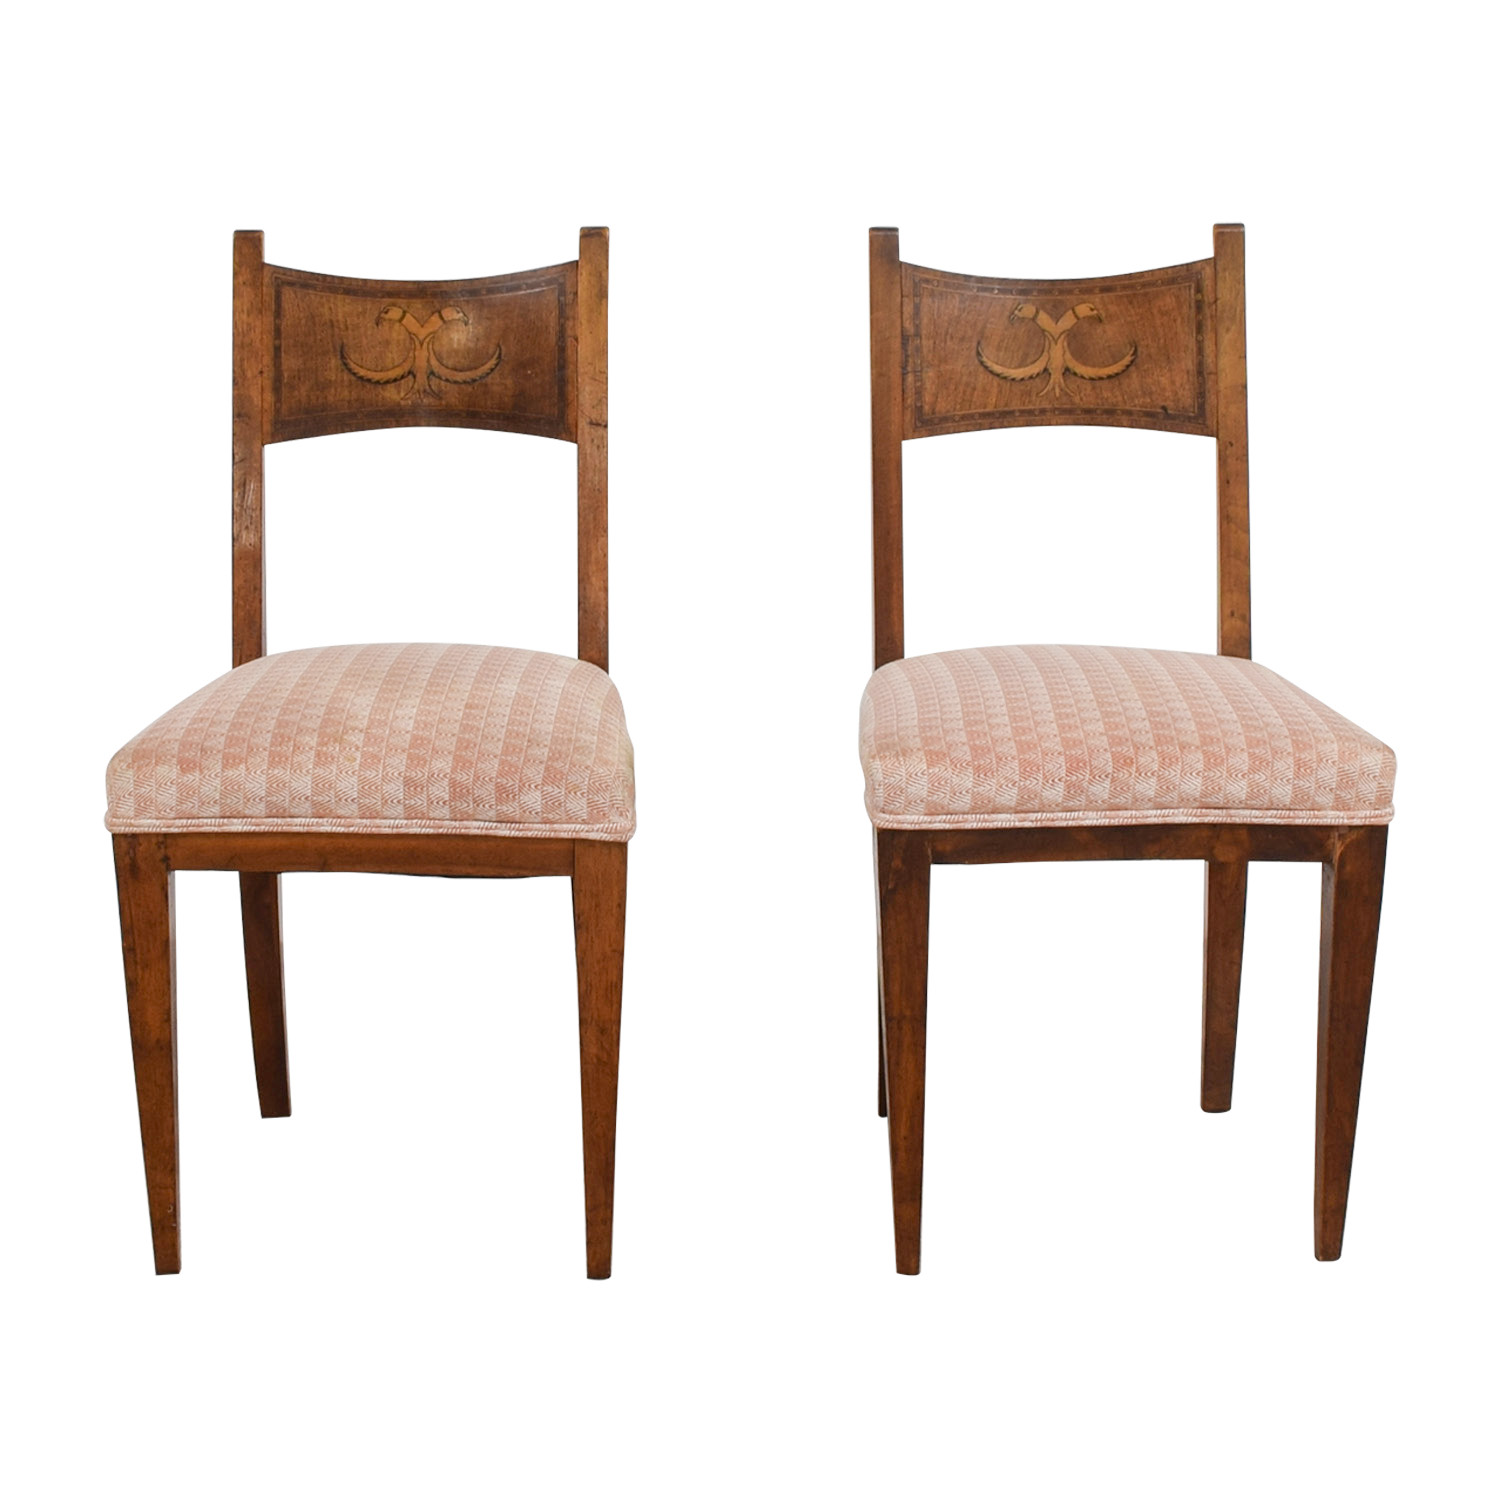 Cheap Dining Chairs For Sale Dining Chairs Used Dining Chairs For Sale